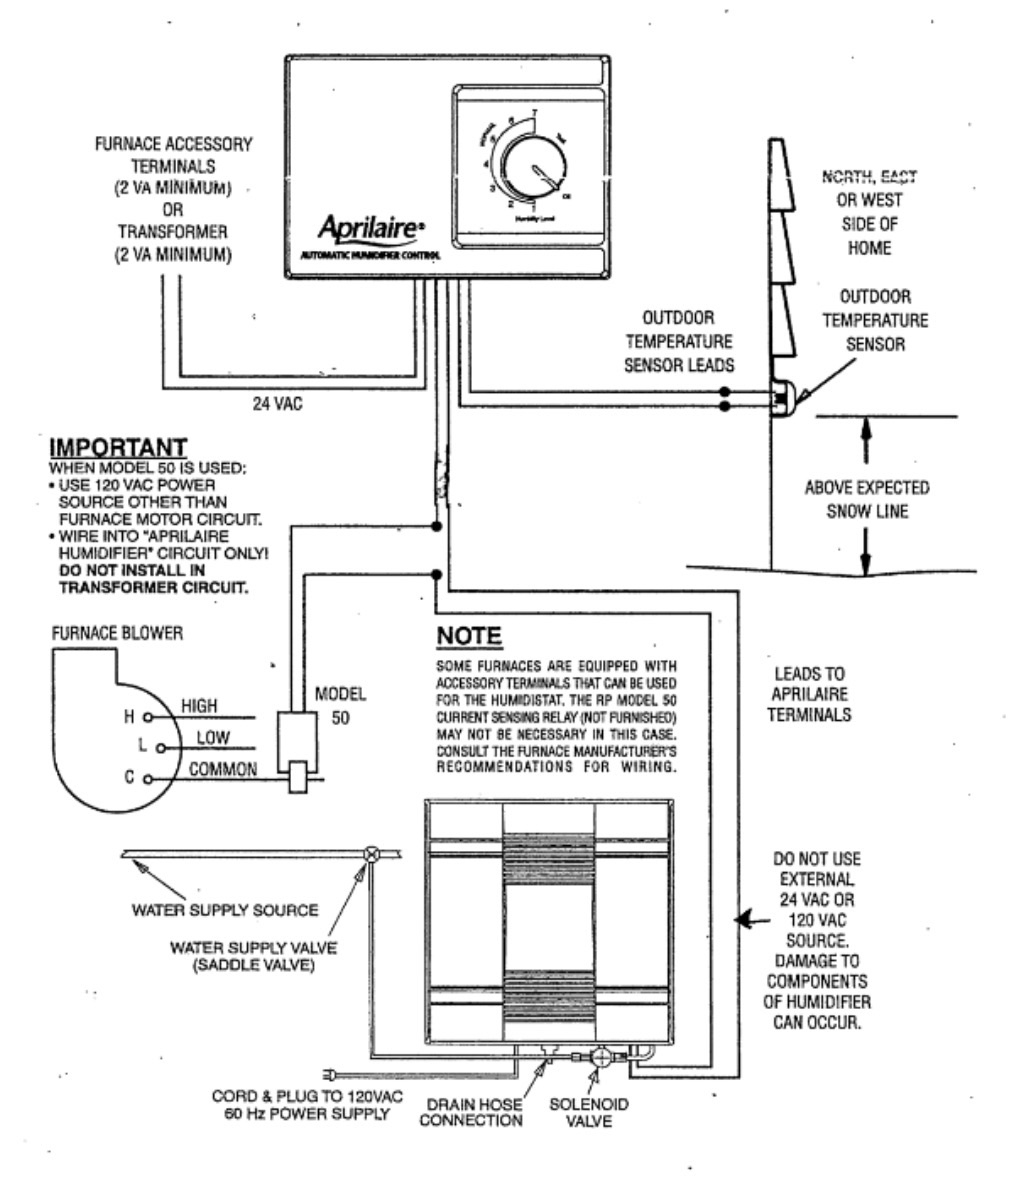 Wiring For Whole House Humidifier - Data Wiring Diagram Today - Nest Humidifier Solenoid Wiring Diagram